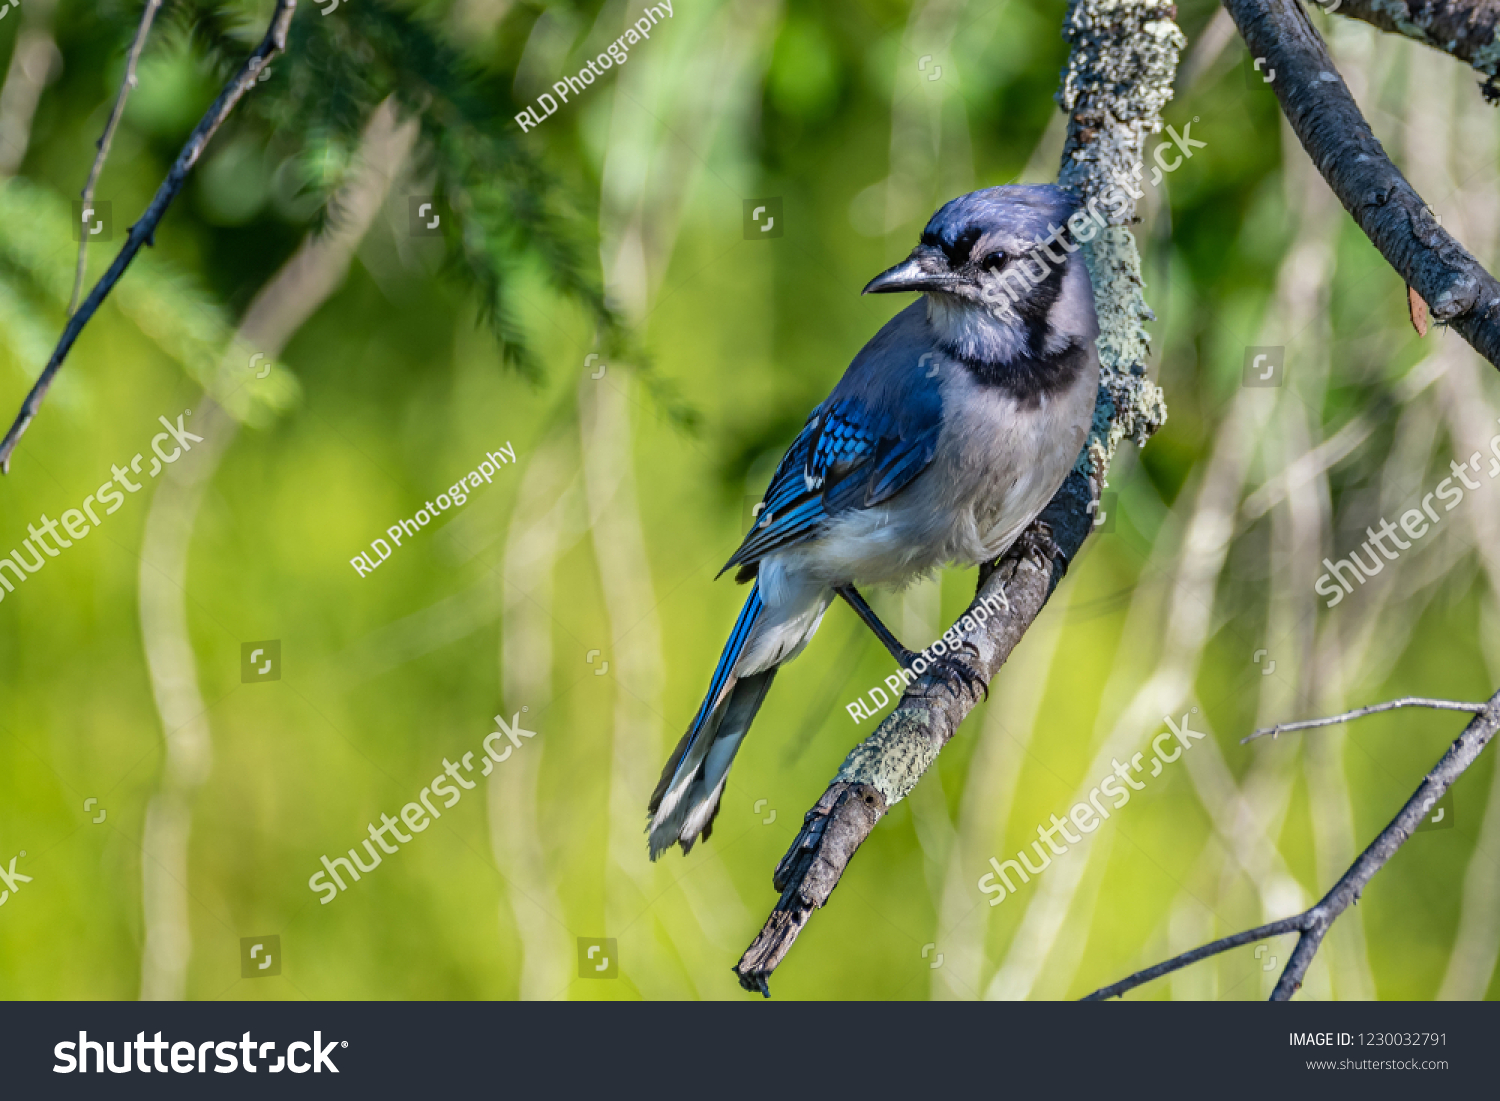 An image of a Blue Jay (Cyanocitta Cristata of the family Crvidae) perched at the very end of an old dead tree branch curiously looking around